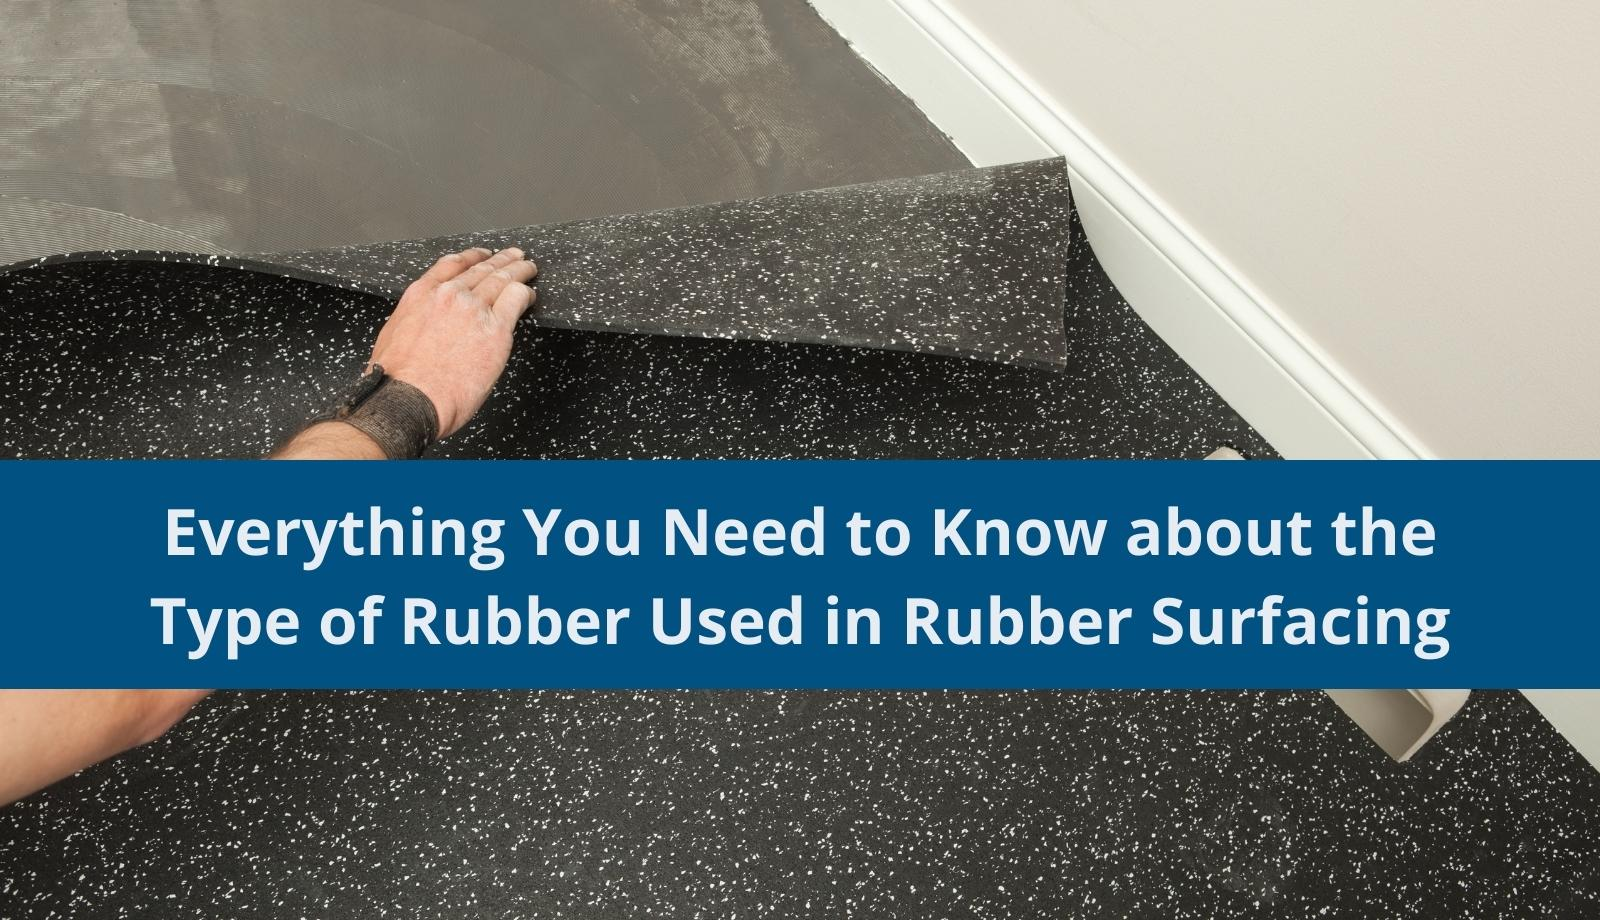 Everything You Need to Know about the Type of Rubber Used in Rubber Surfacing